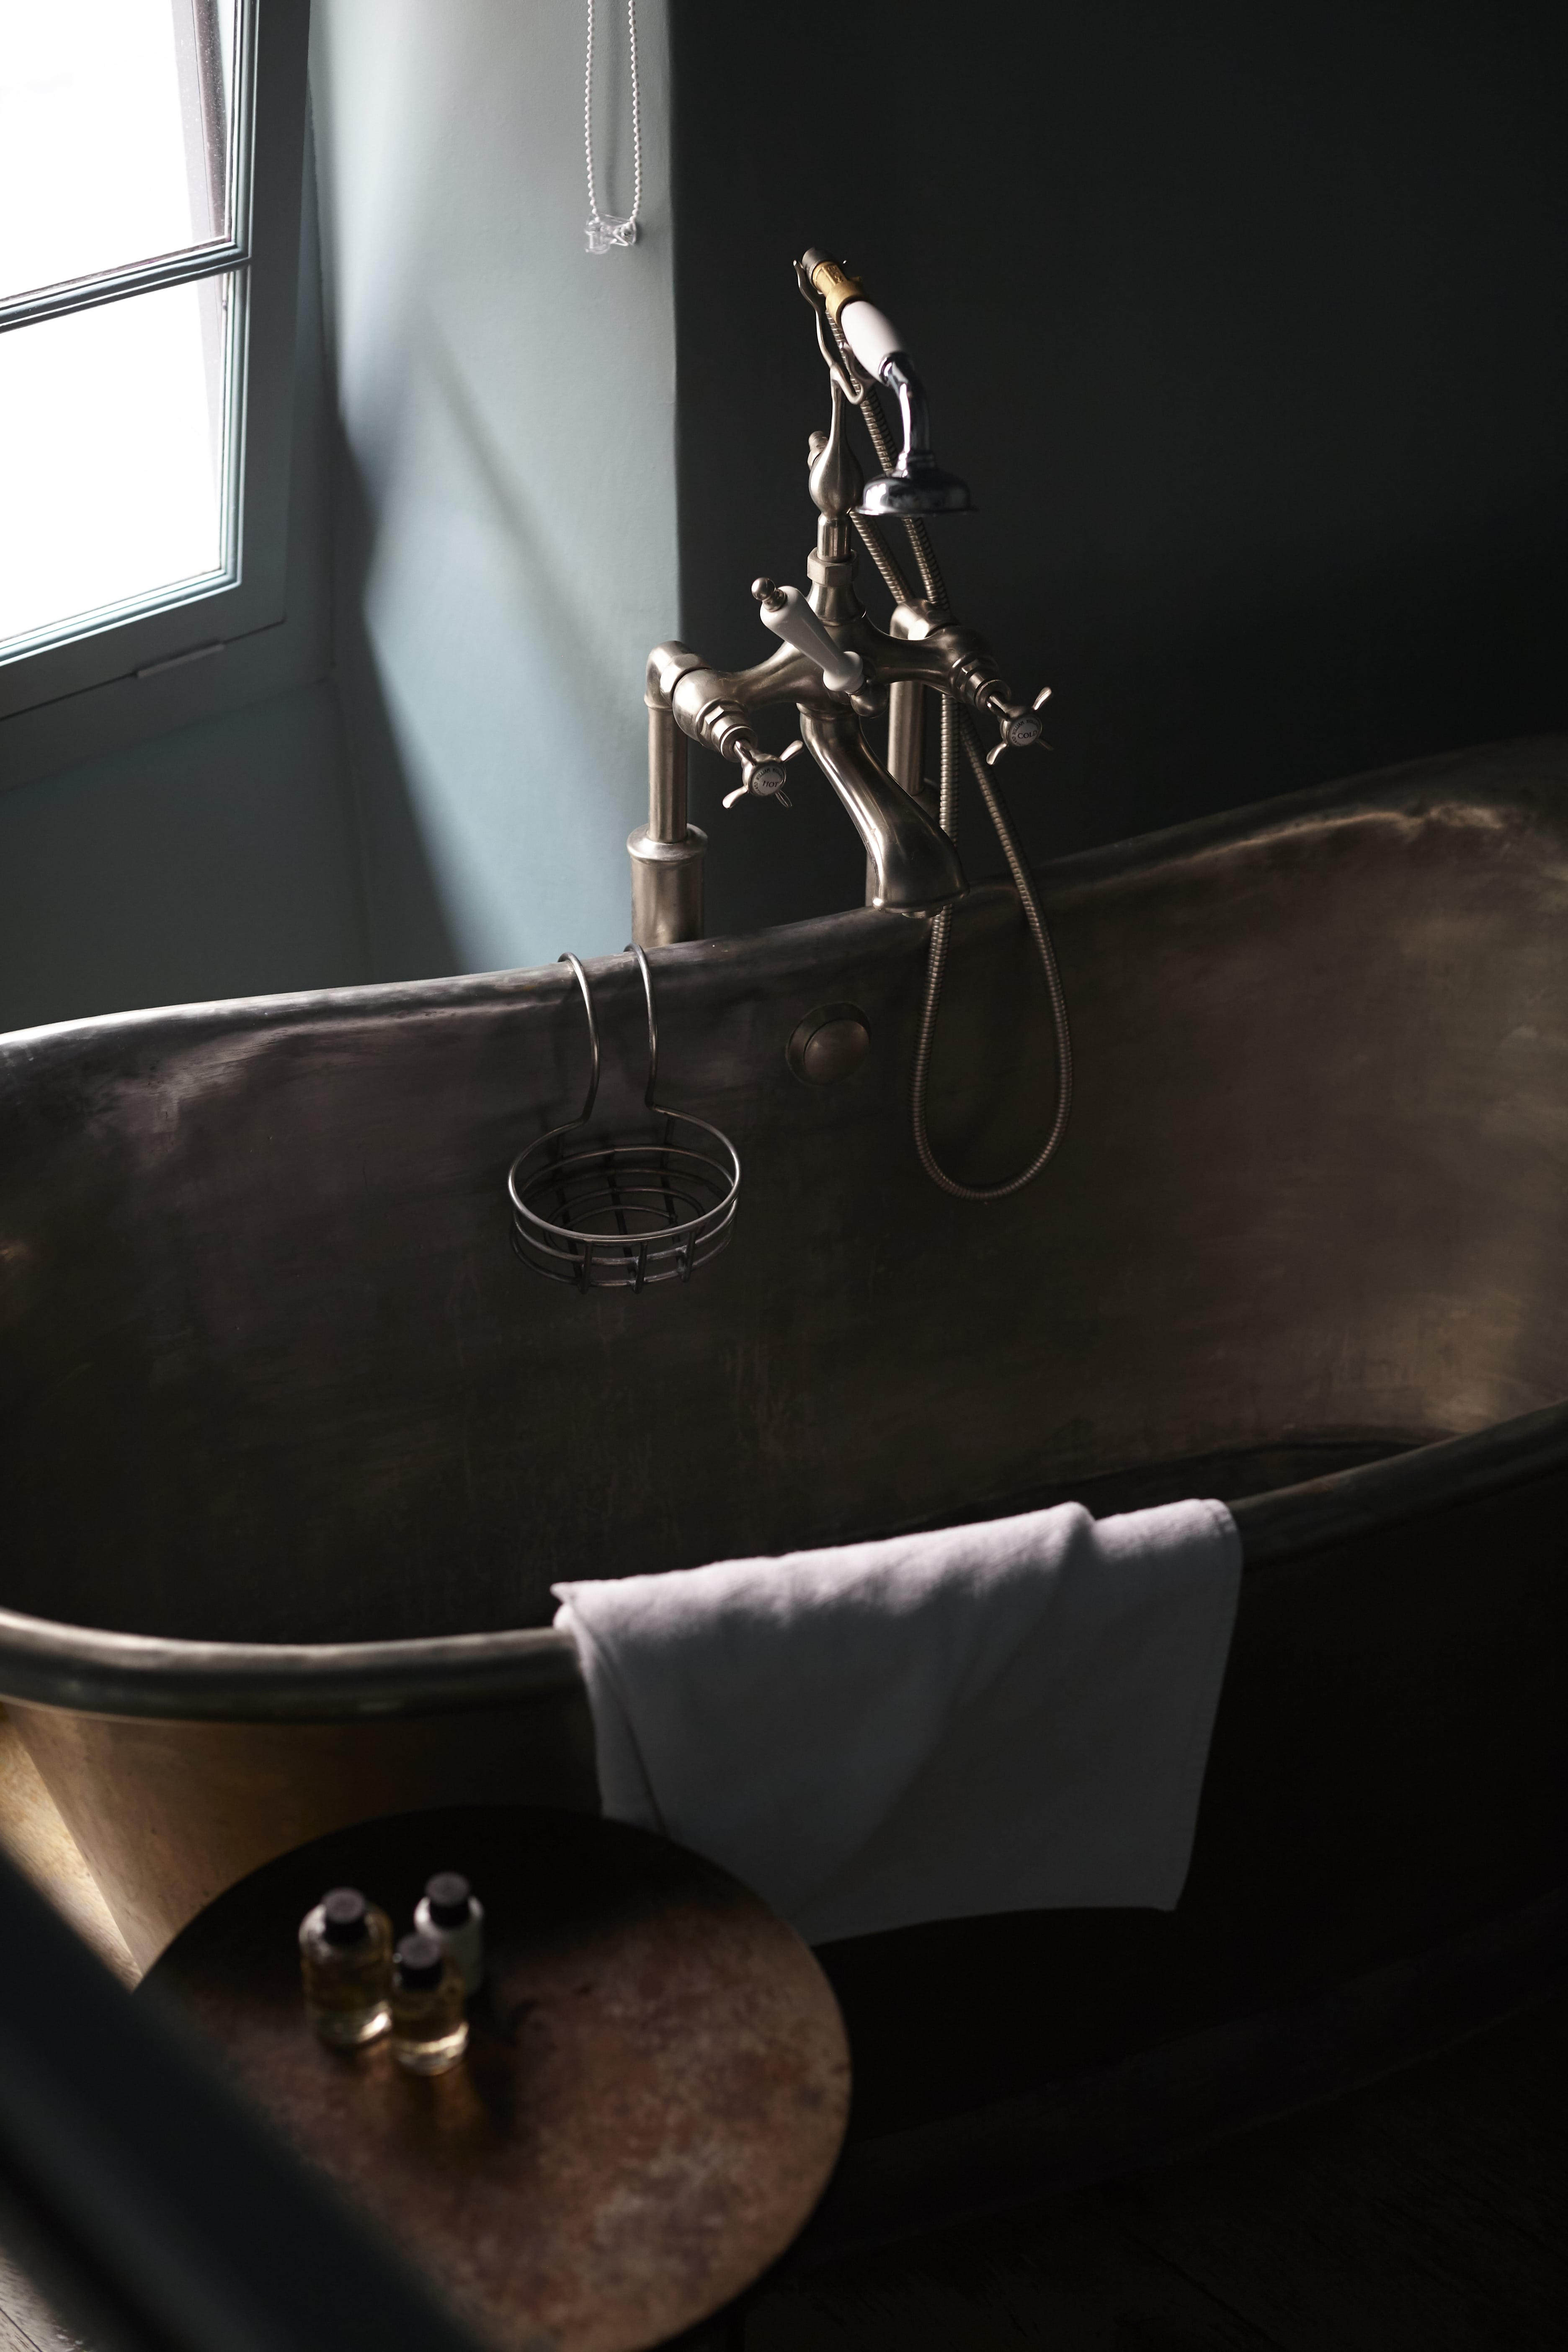 stainless steel bath tub with noble isle bath products and a fresh towel at The Archangel, pub and cocktail bar with bedrooms in Frome, Somerset